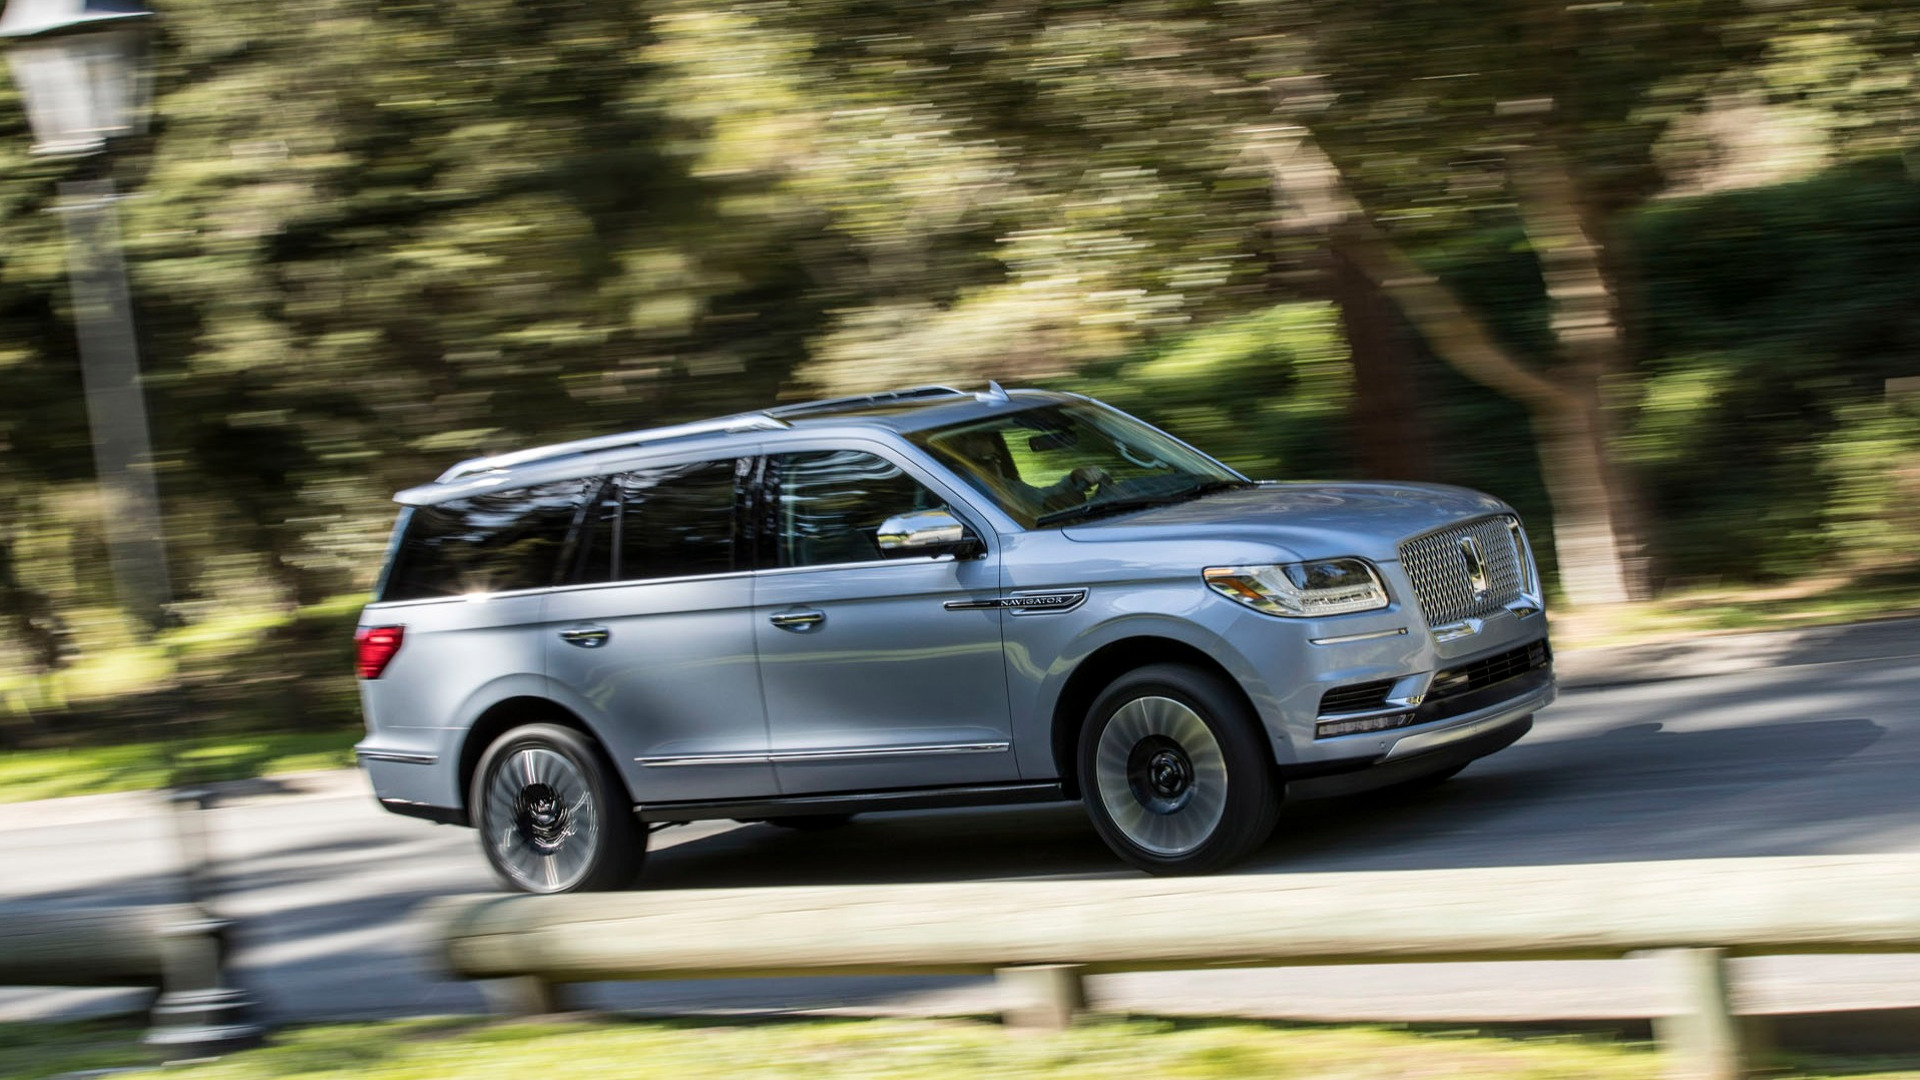 Lincoln lincoln navigator new york auto show 2018 lincoln navigator - 2018 Lincoln Navigator A Closer Look Inside And Out Via Videos Product 2017 04 22 11 54 04